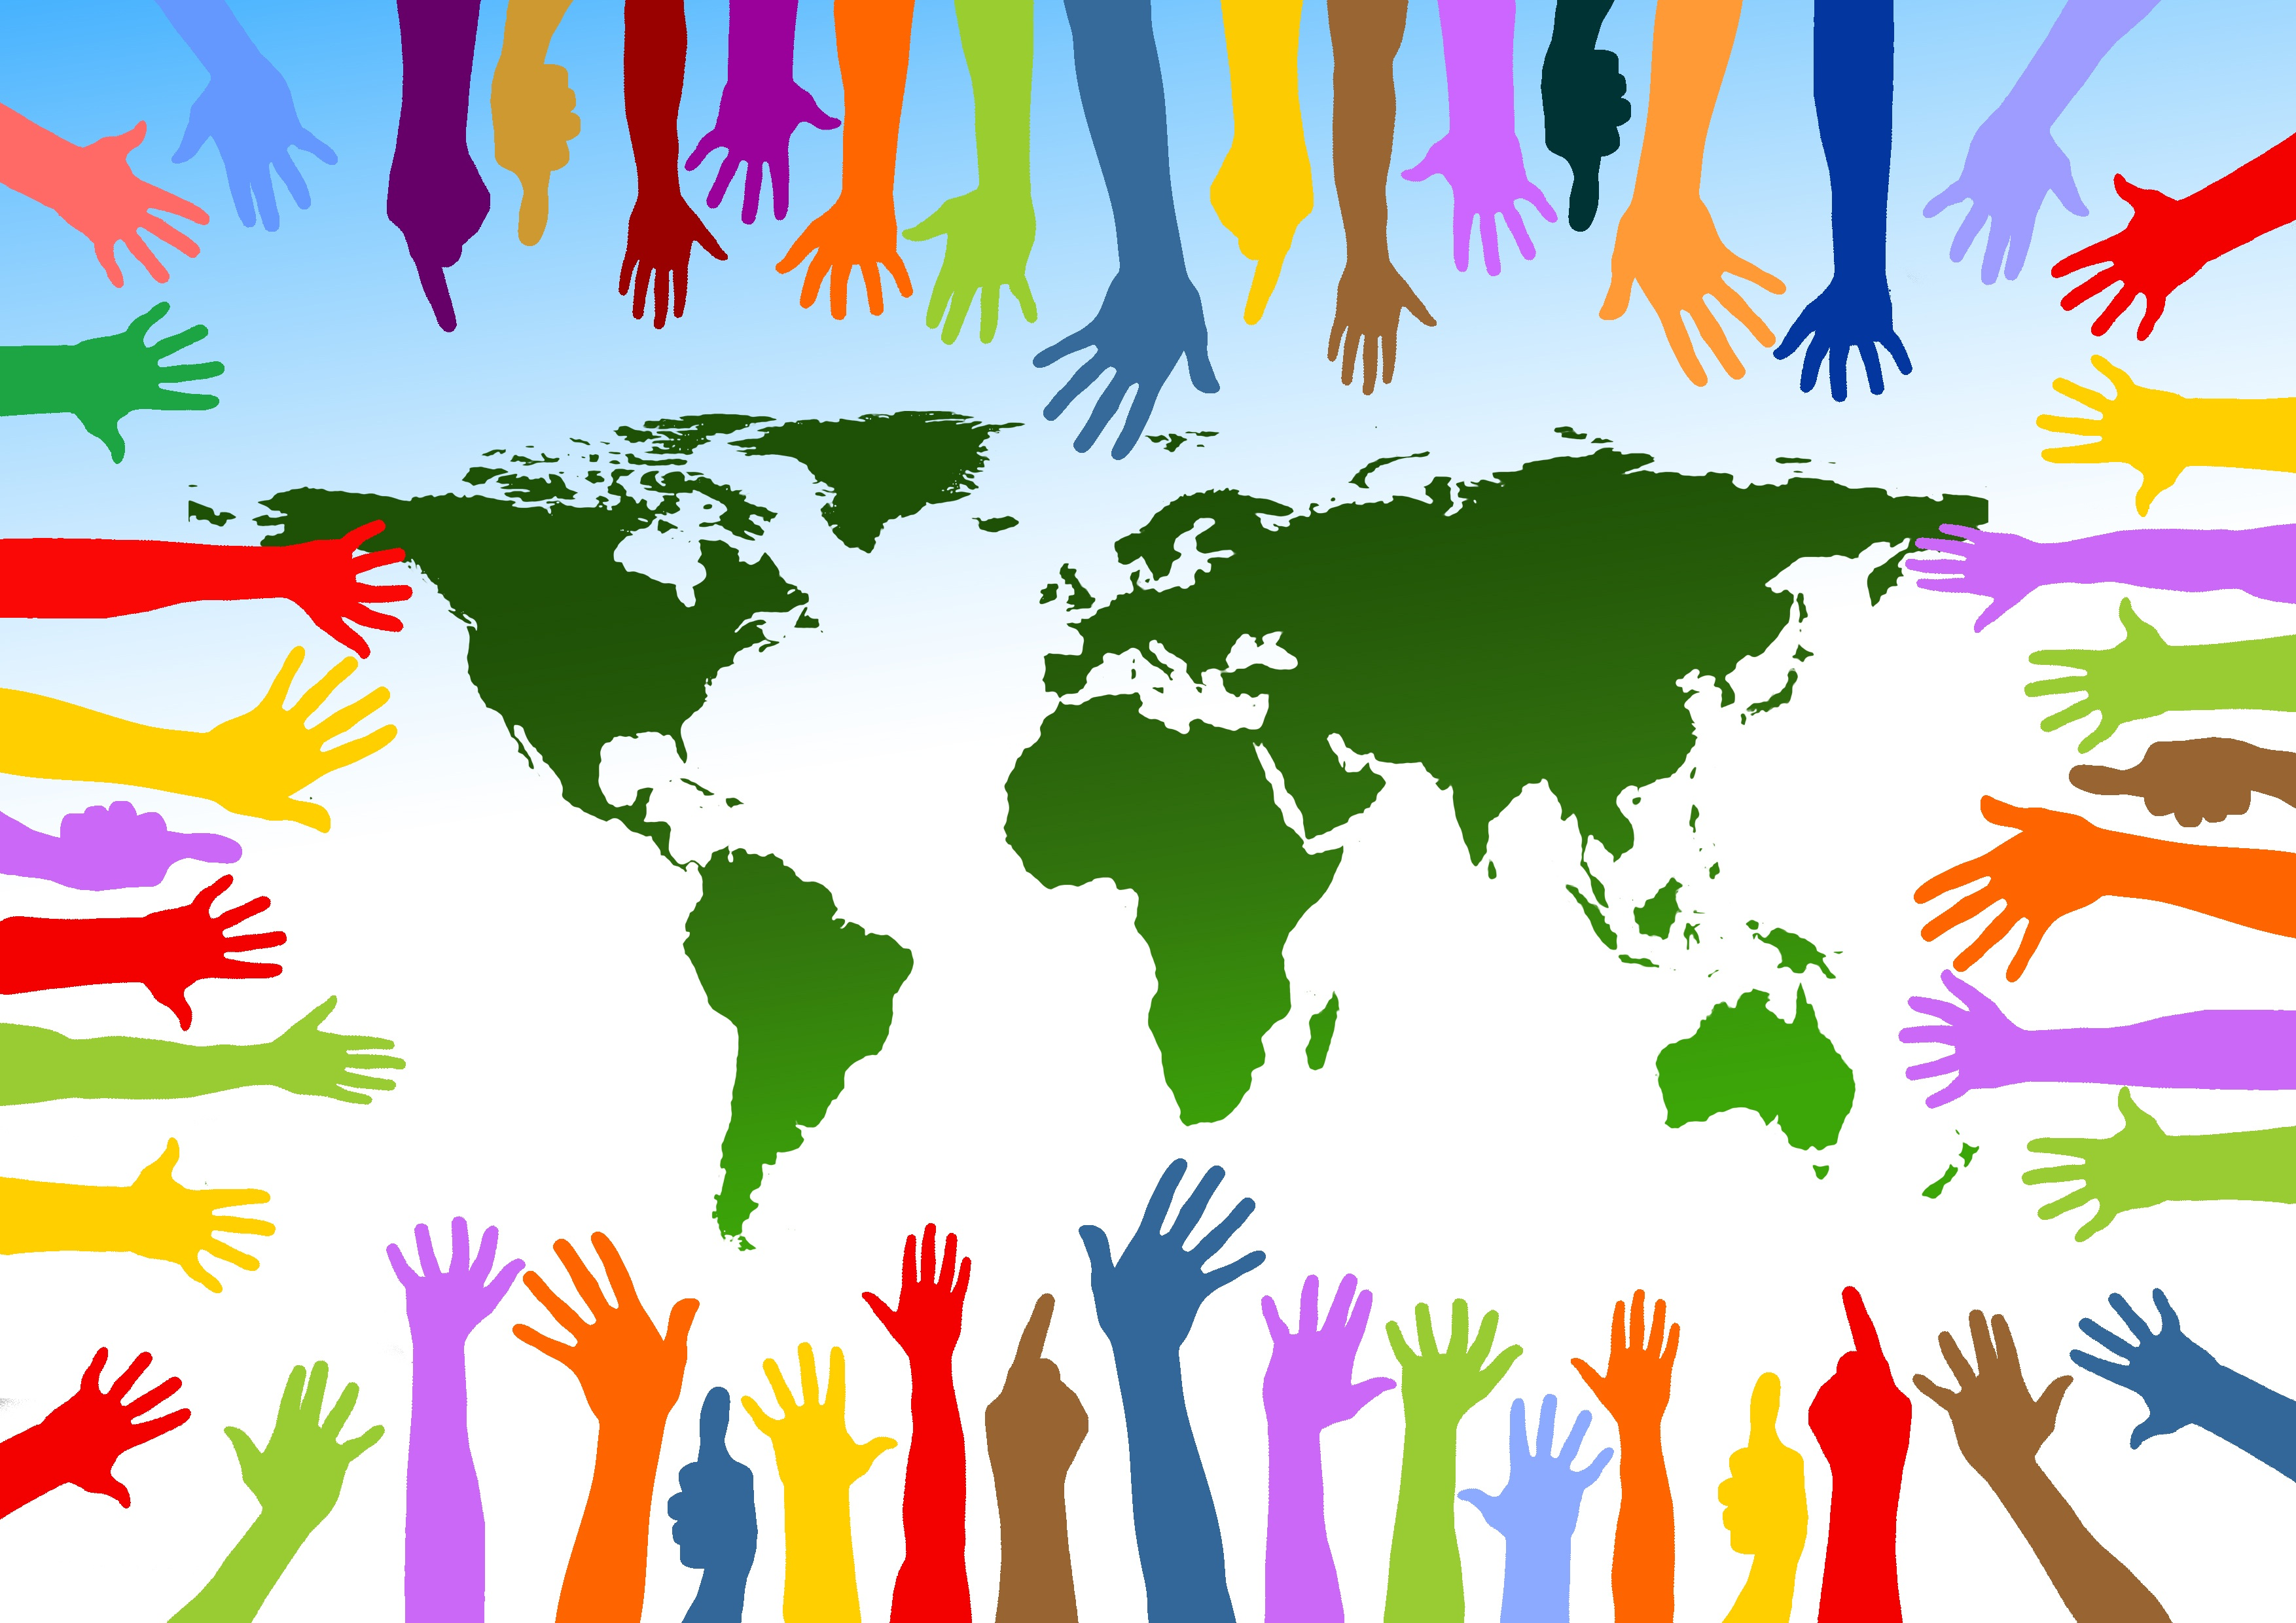 Colored hands on the background of a globe means cooperation 3508x2480